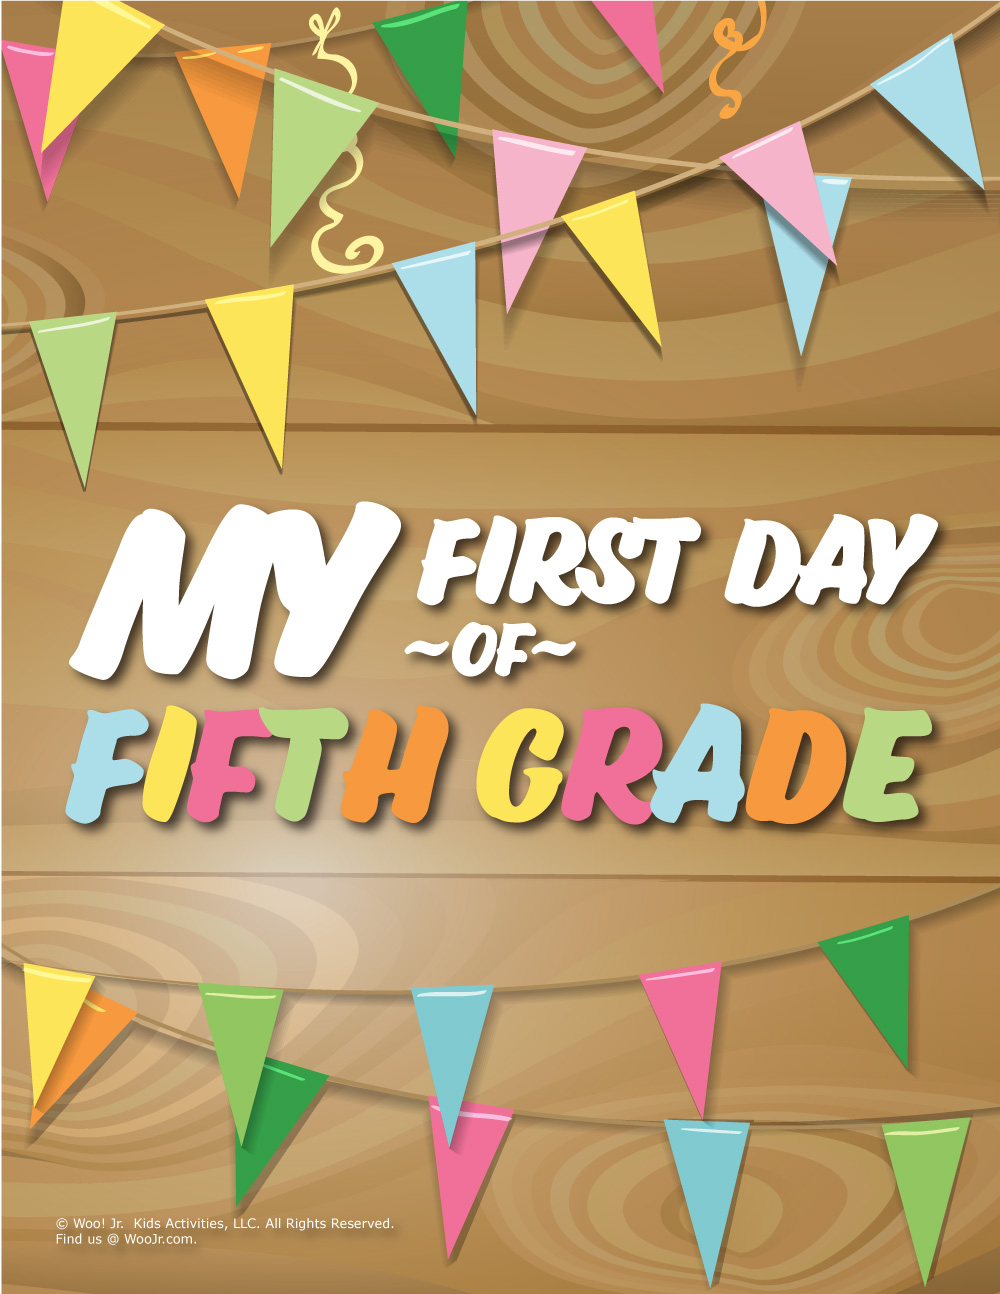 image regarding First Day of 5th Grade Printable named Very first Working day of 5th Quality Signal - Wooden Woo! Jr. Little ones Routines